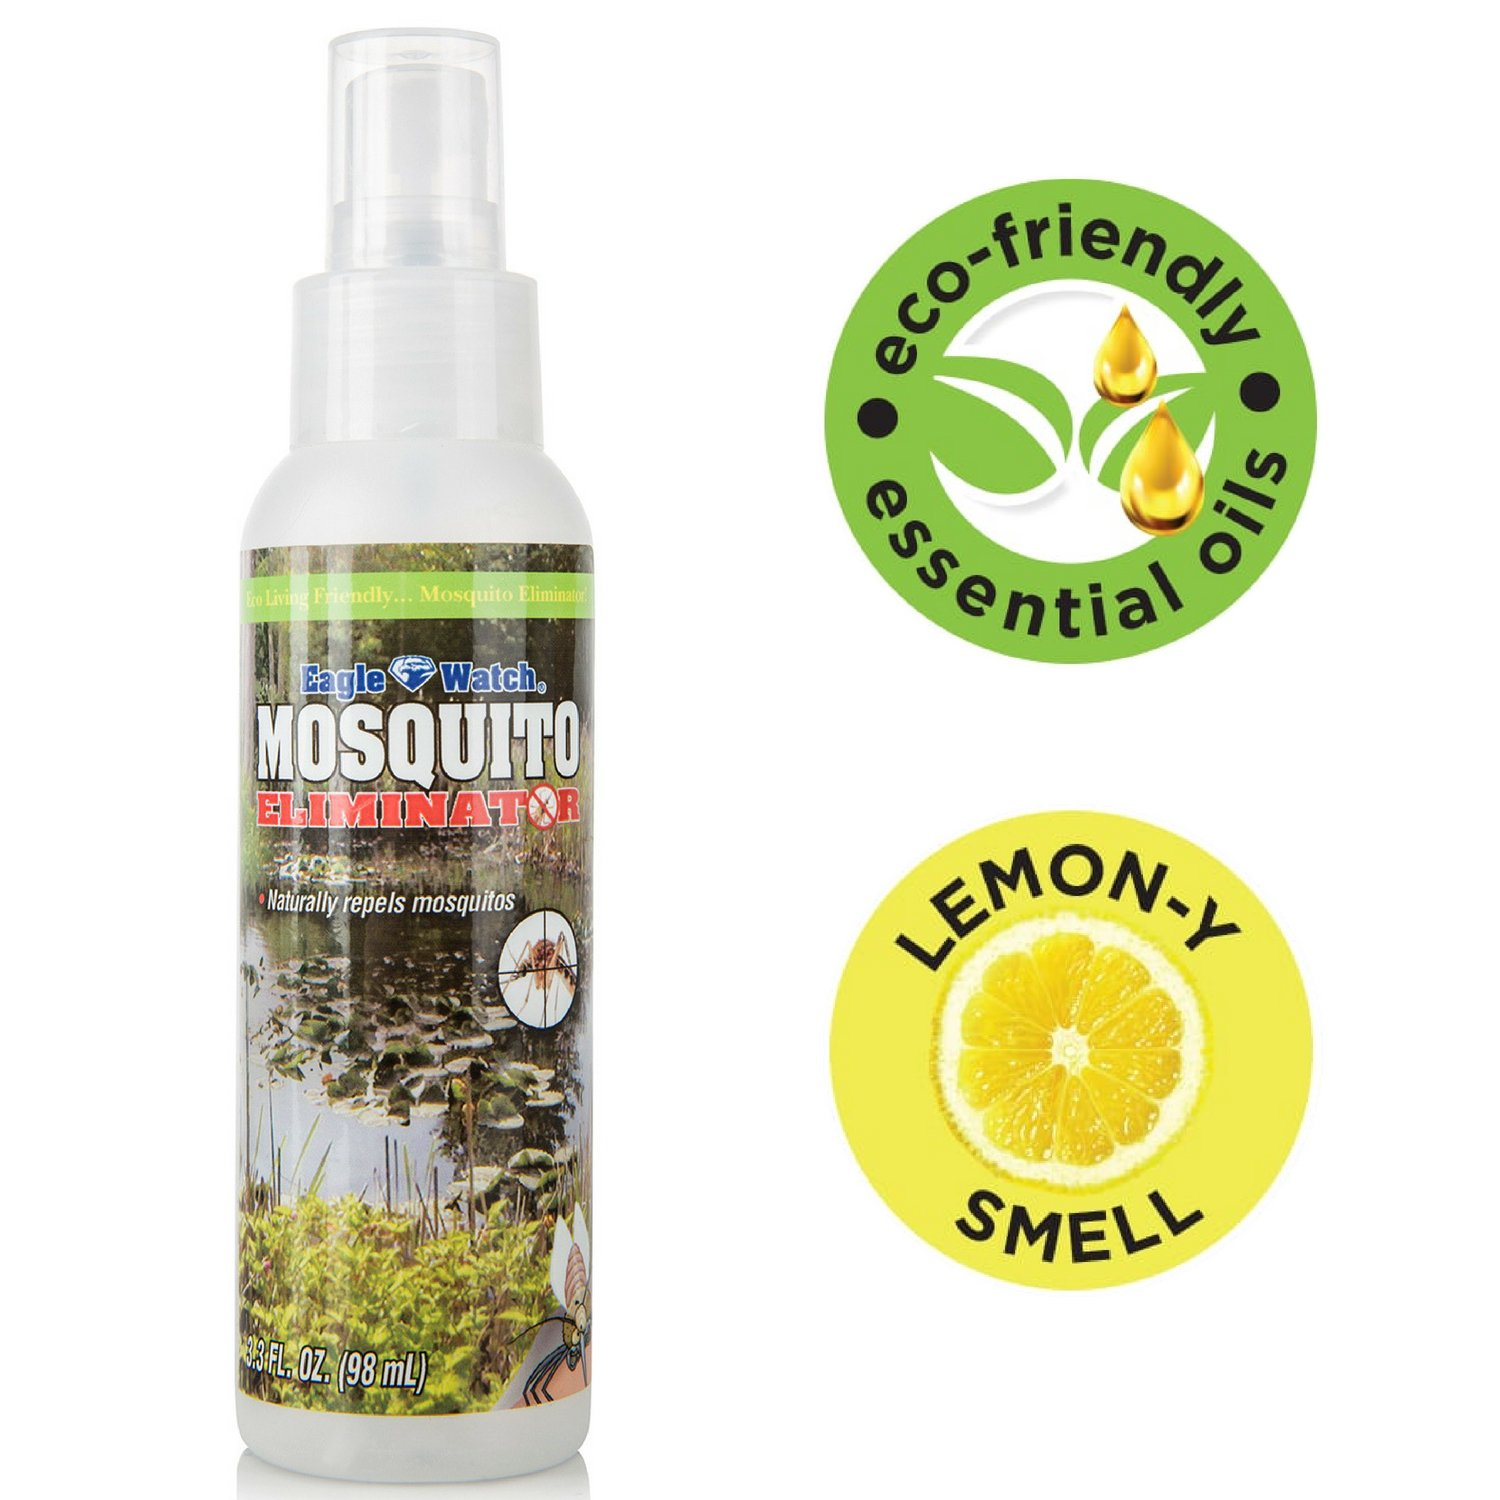 Eagle Watch Natural Mosquito Repellent